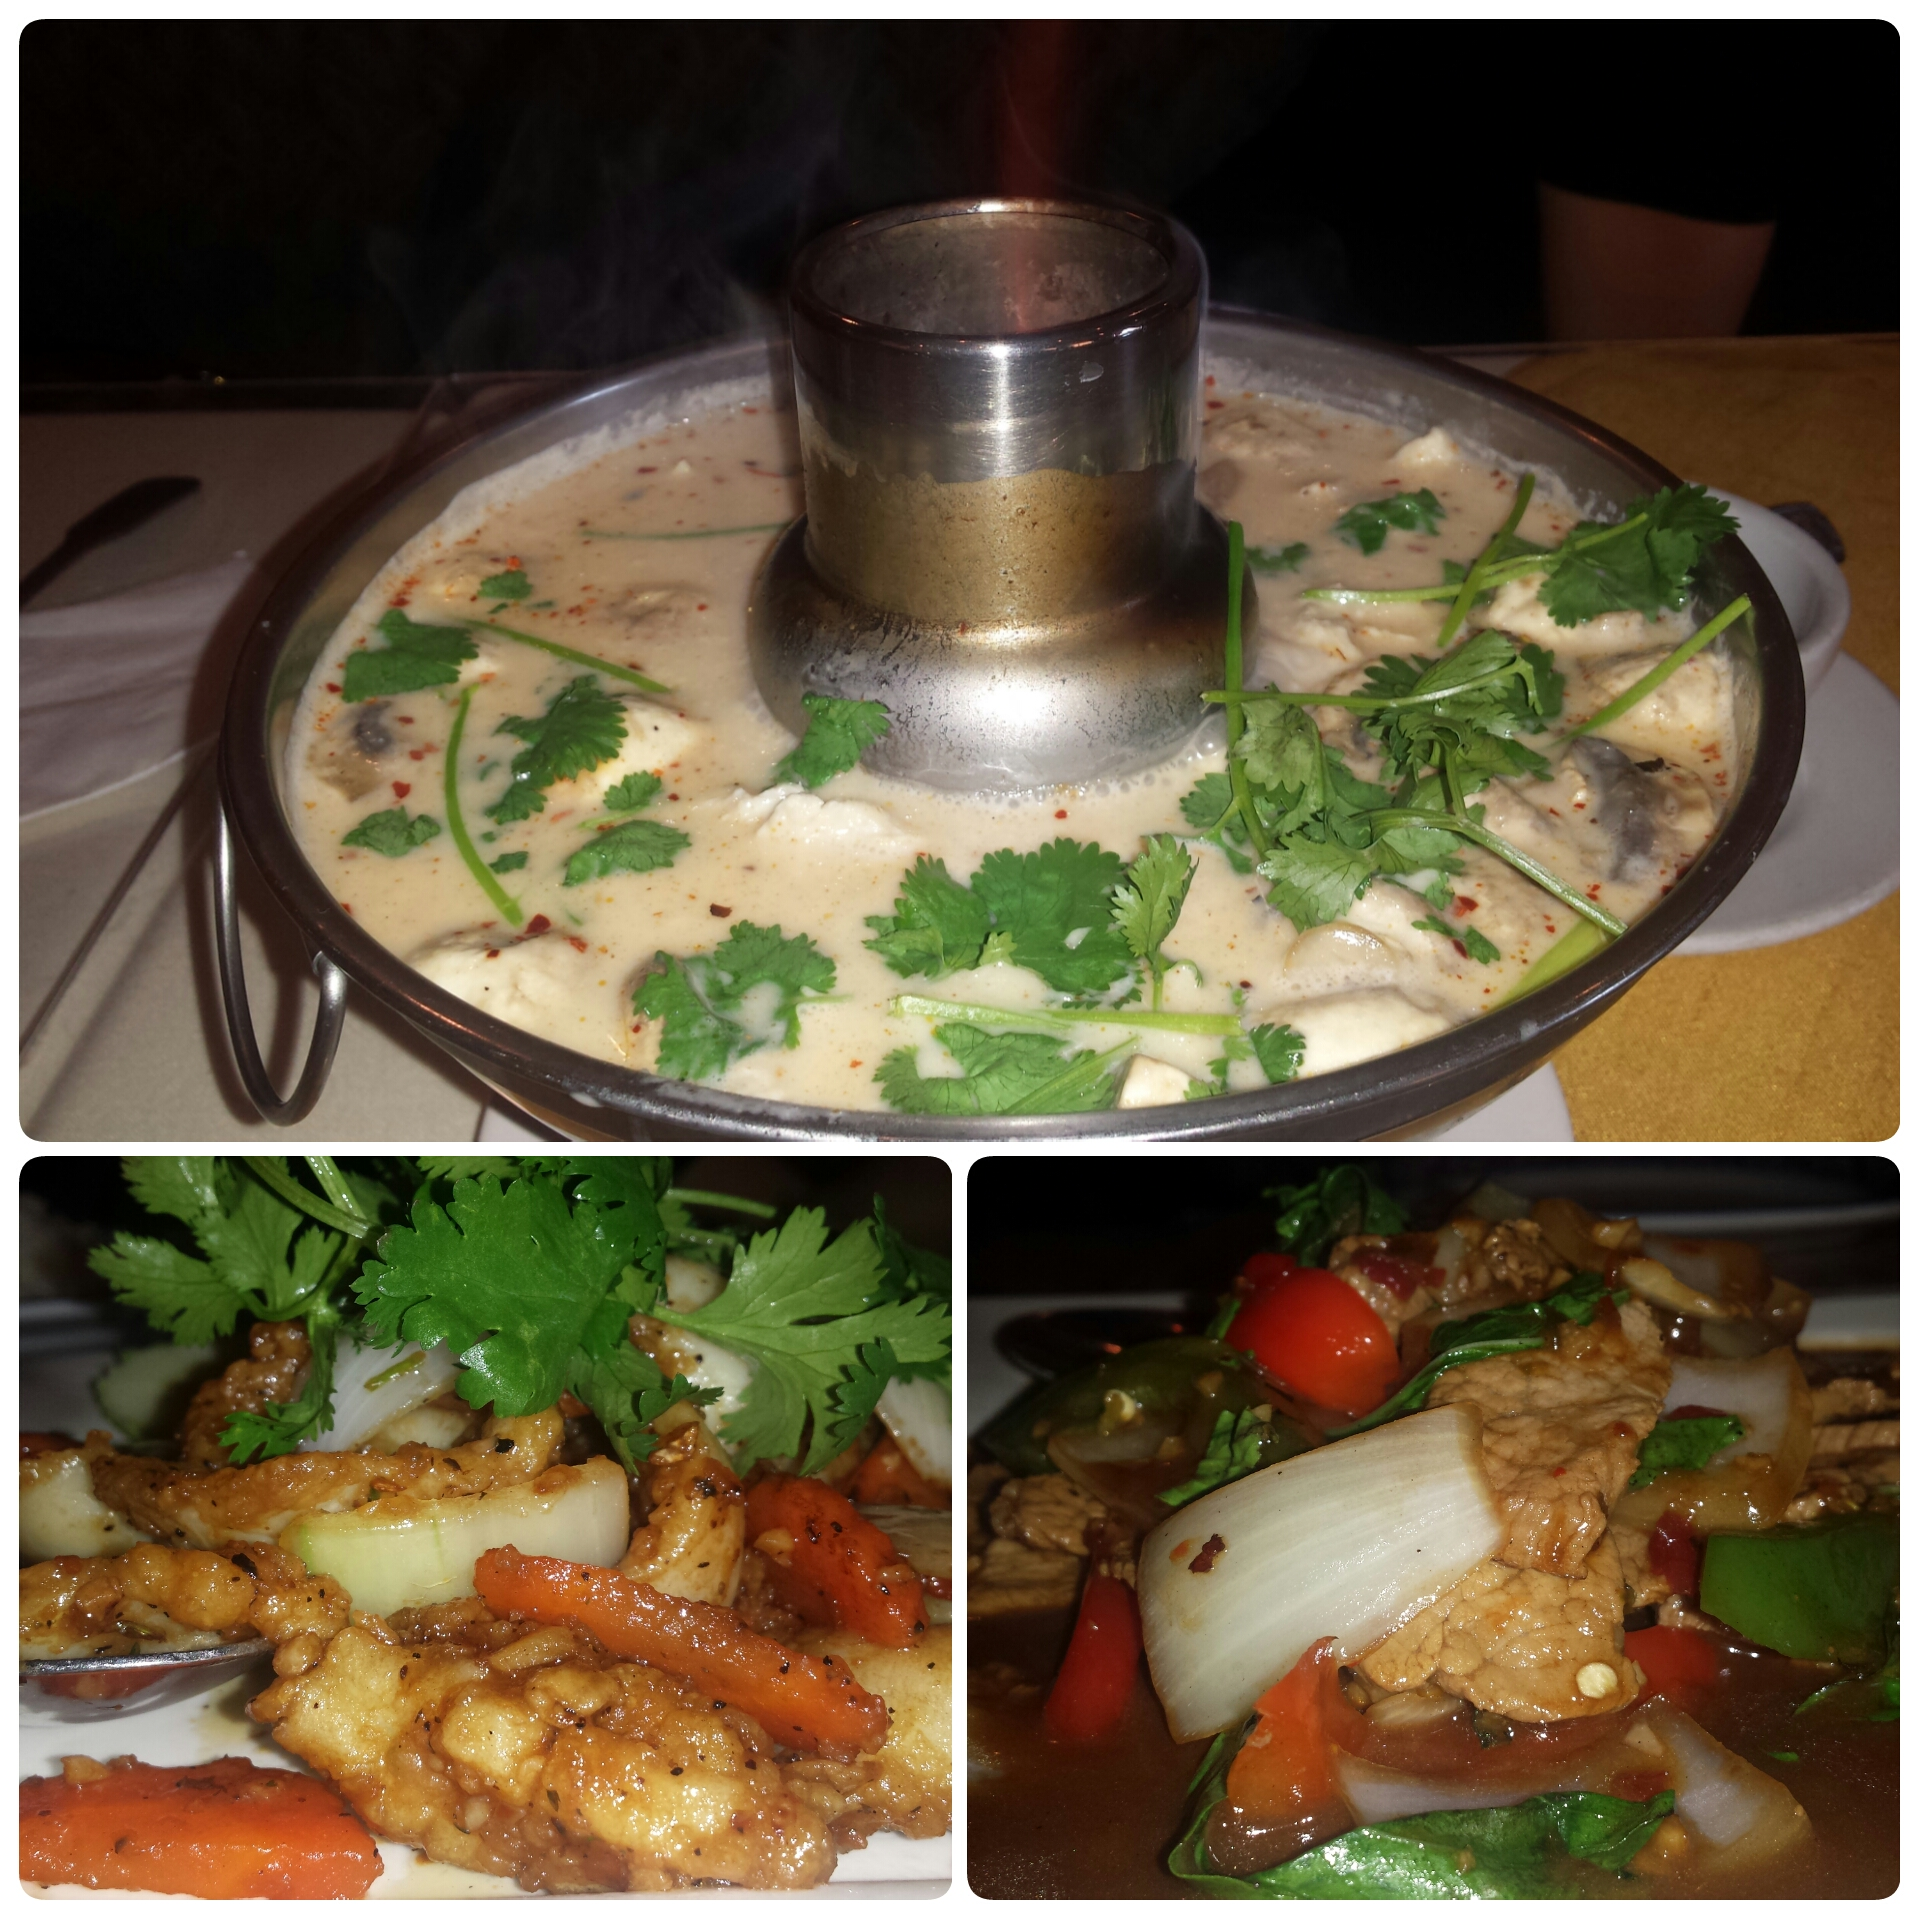 Tom Kha Kai, Calamari in Garlic Sauce, Chicken in Thai Basil